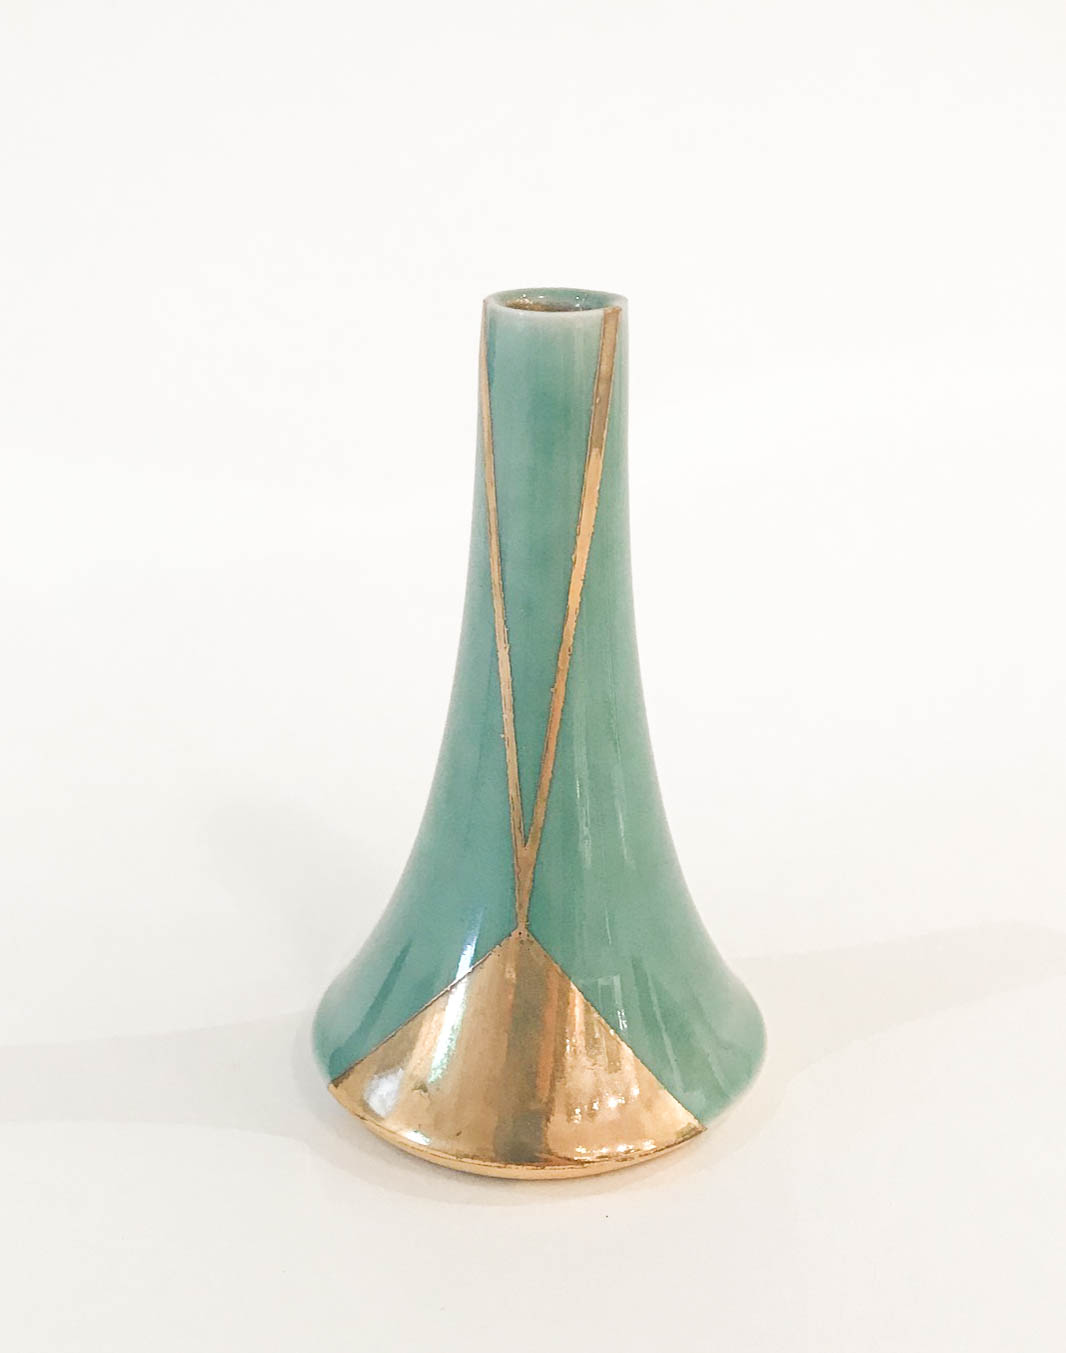 """Small Volcano Vase , wheel-thrown porcelain, celadon with gold luster geometric design, 3 3/4"""" x 2 1/4"""", sold"""